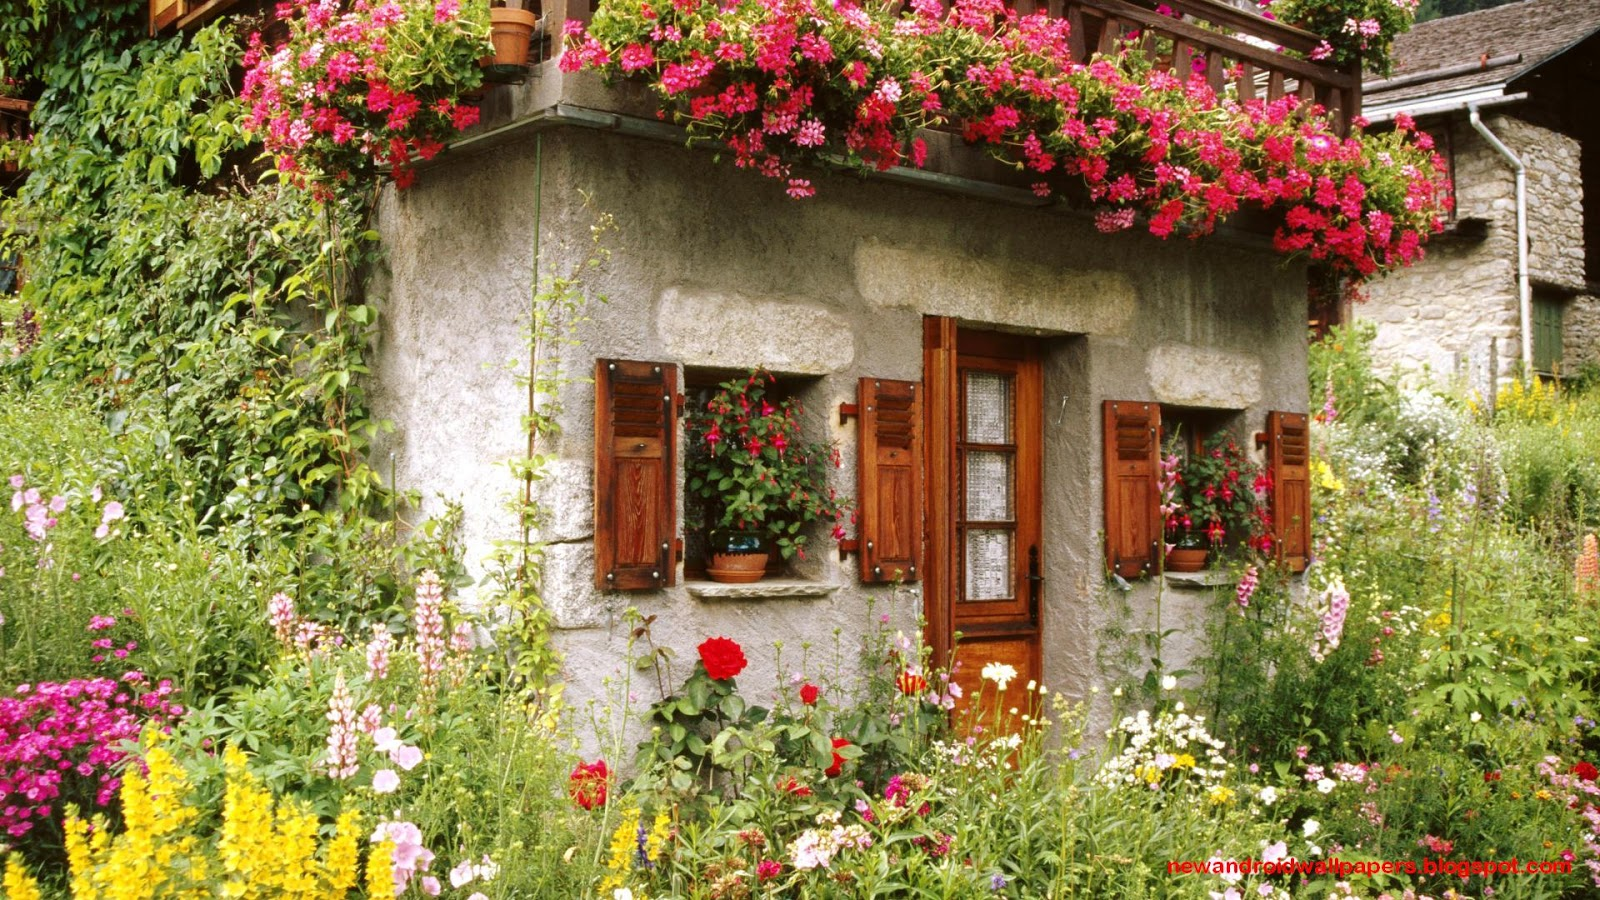 Beautiful Cottage Garden Flowers Wallpaper 1080p 1600 X 900 Flower Wallpaper